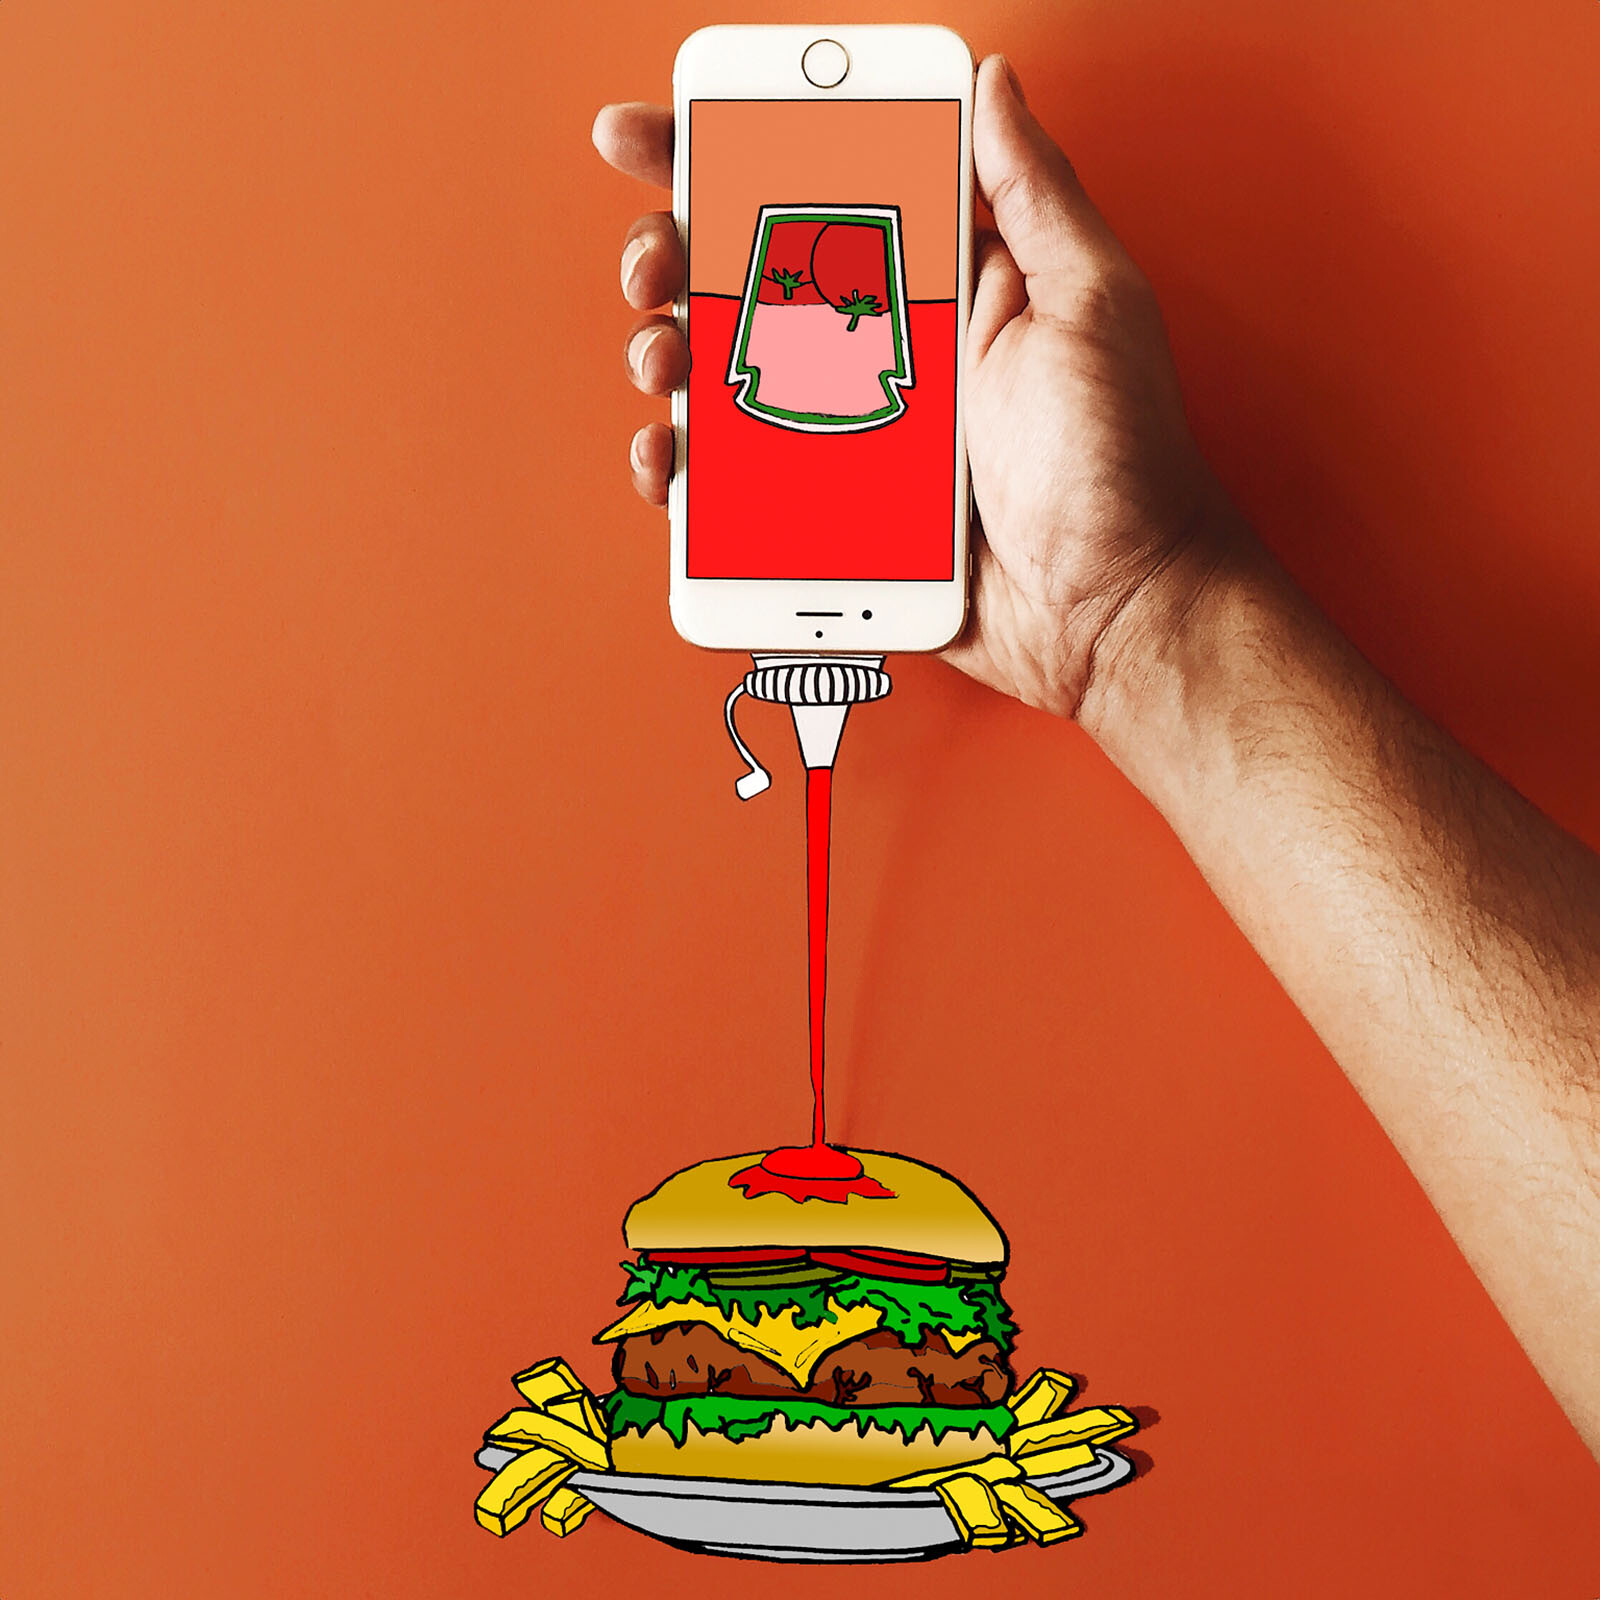 The Best Burger by Anshuman Ghosh